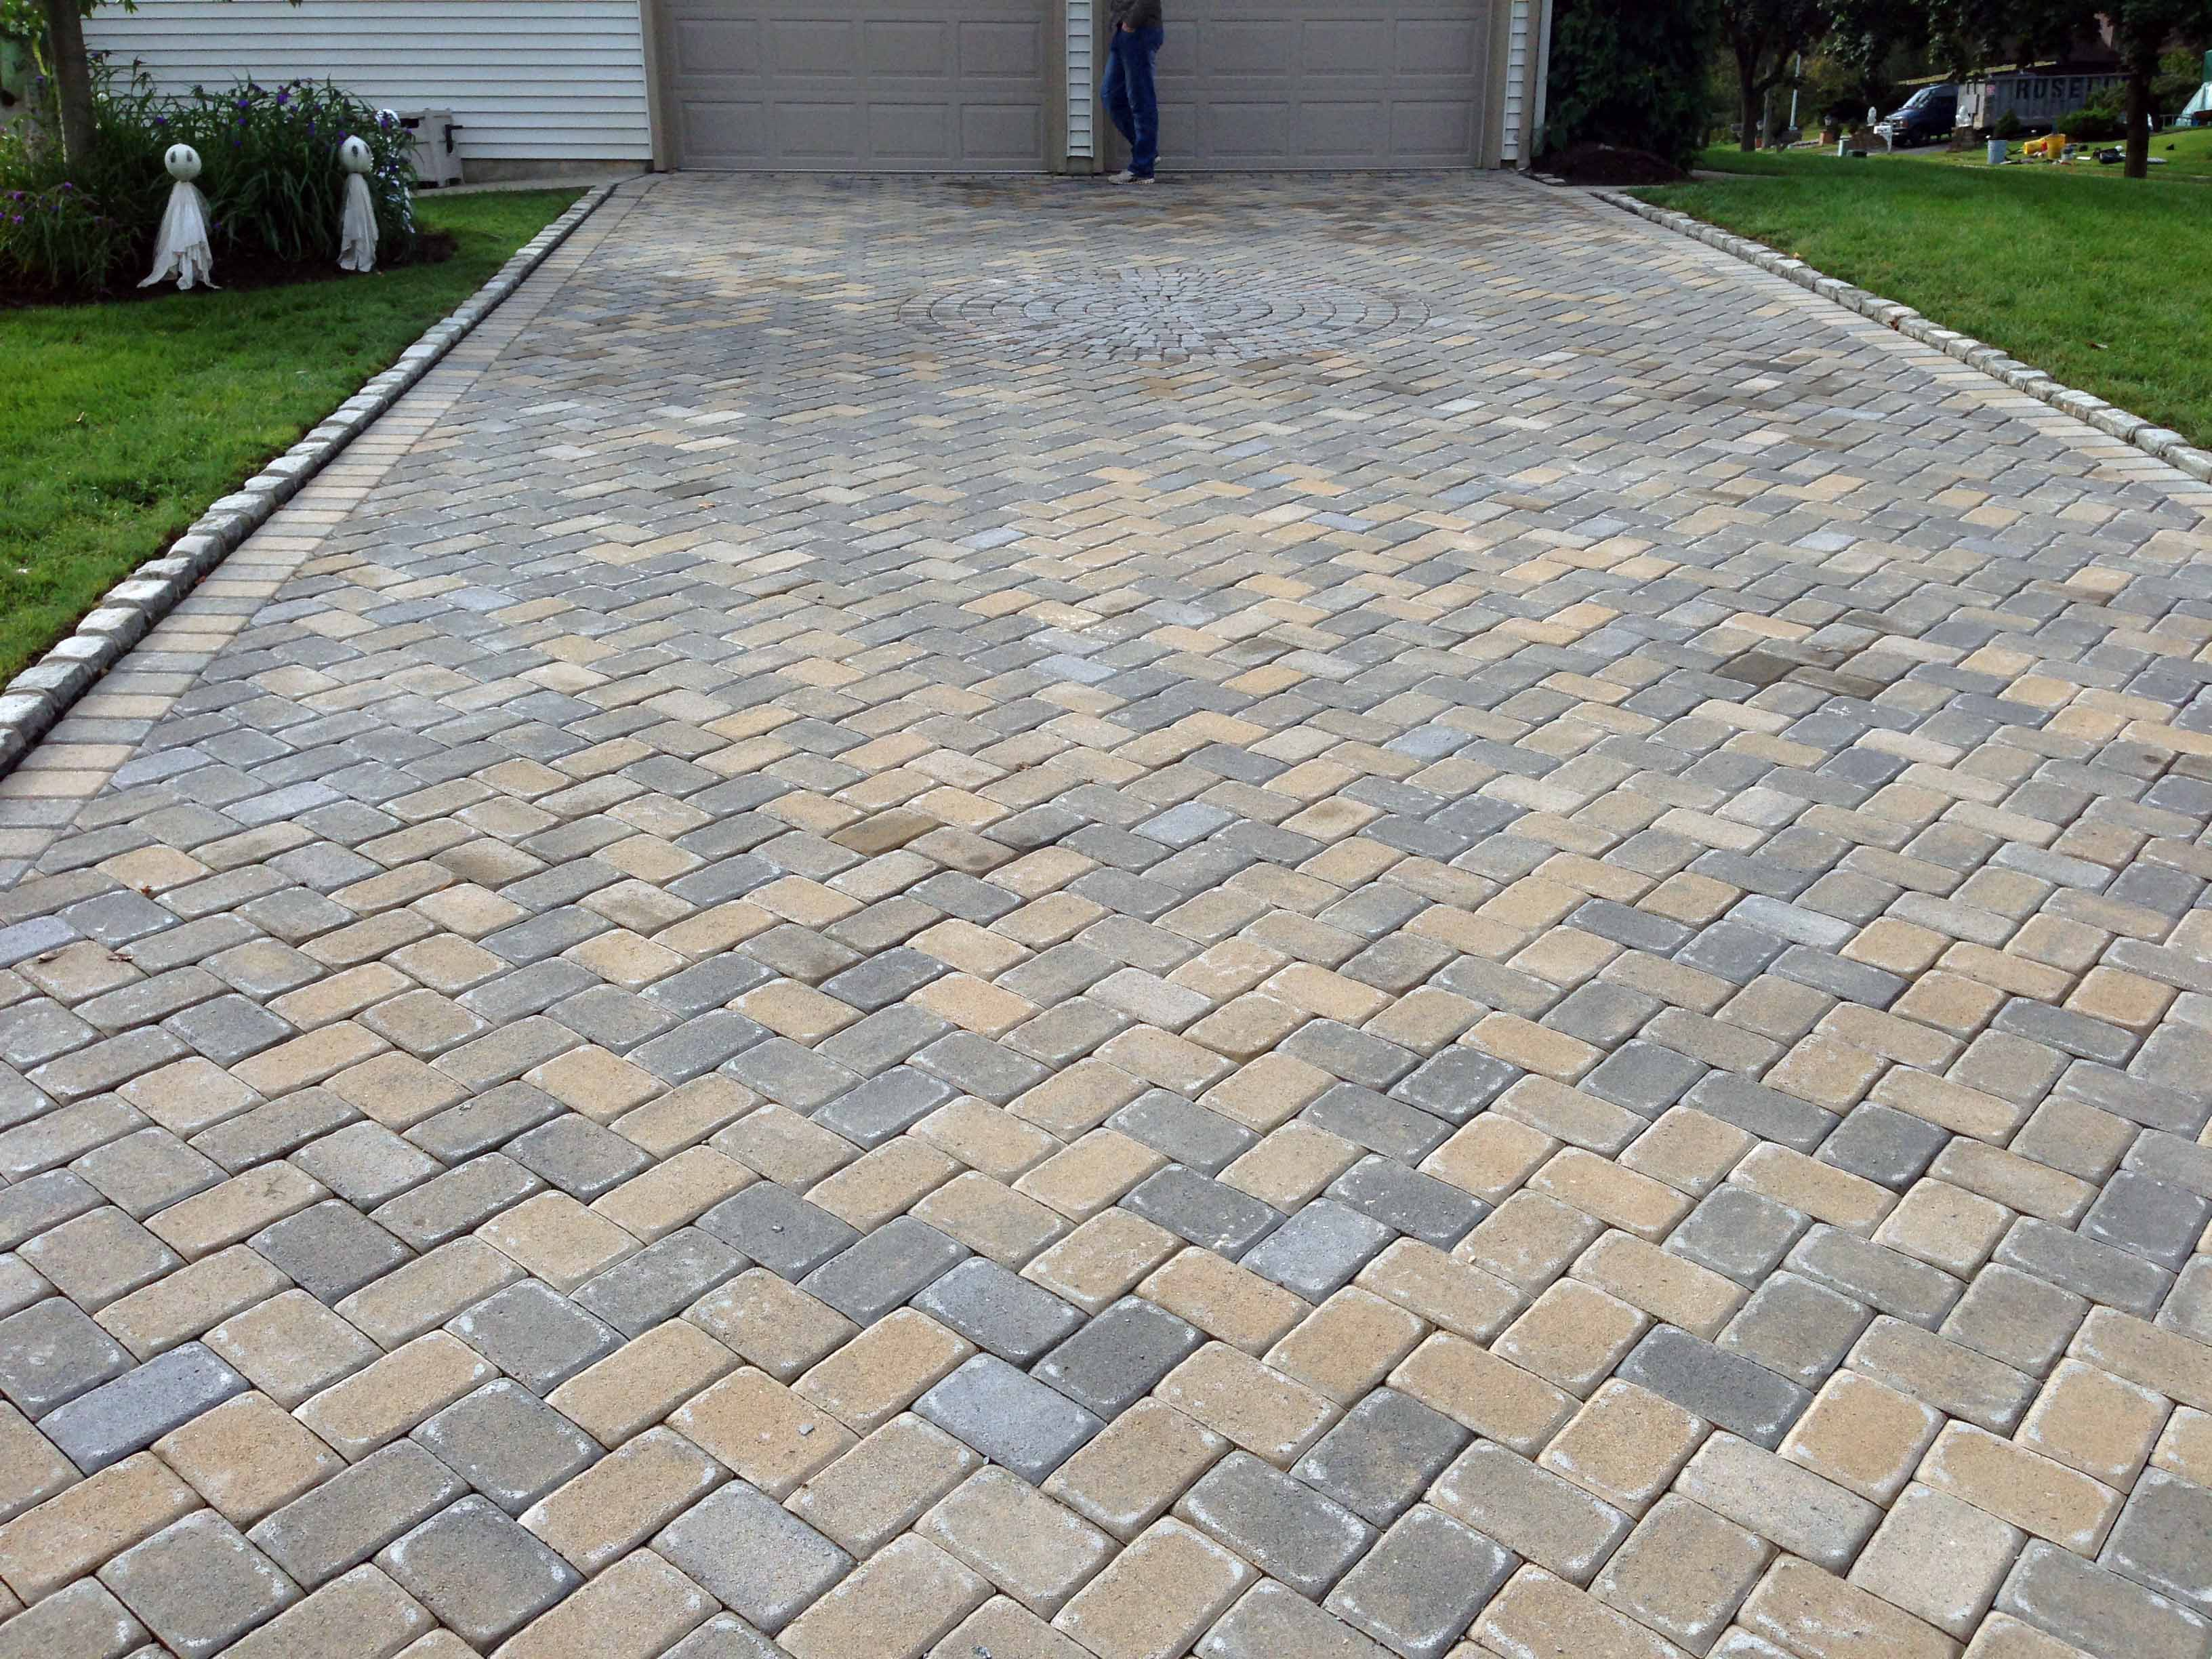 somerset-nj-paving-masonry-contractor-711.jpg